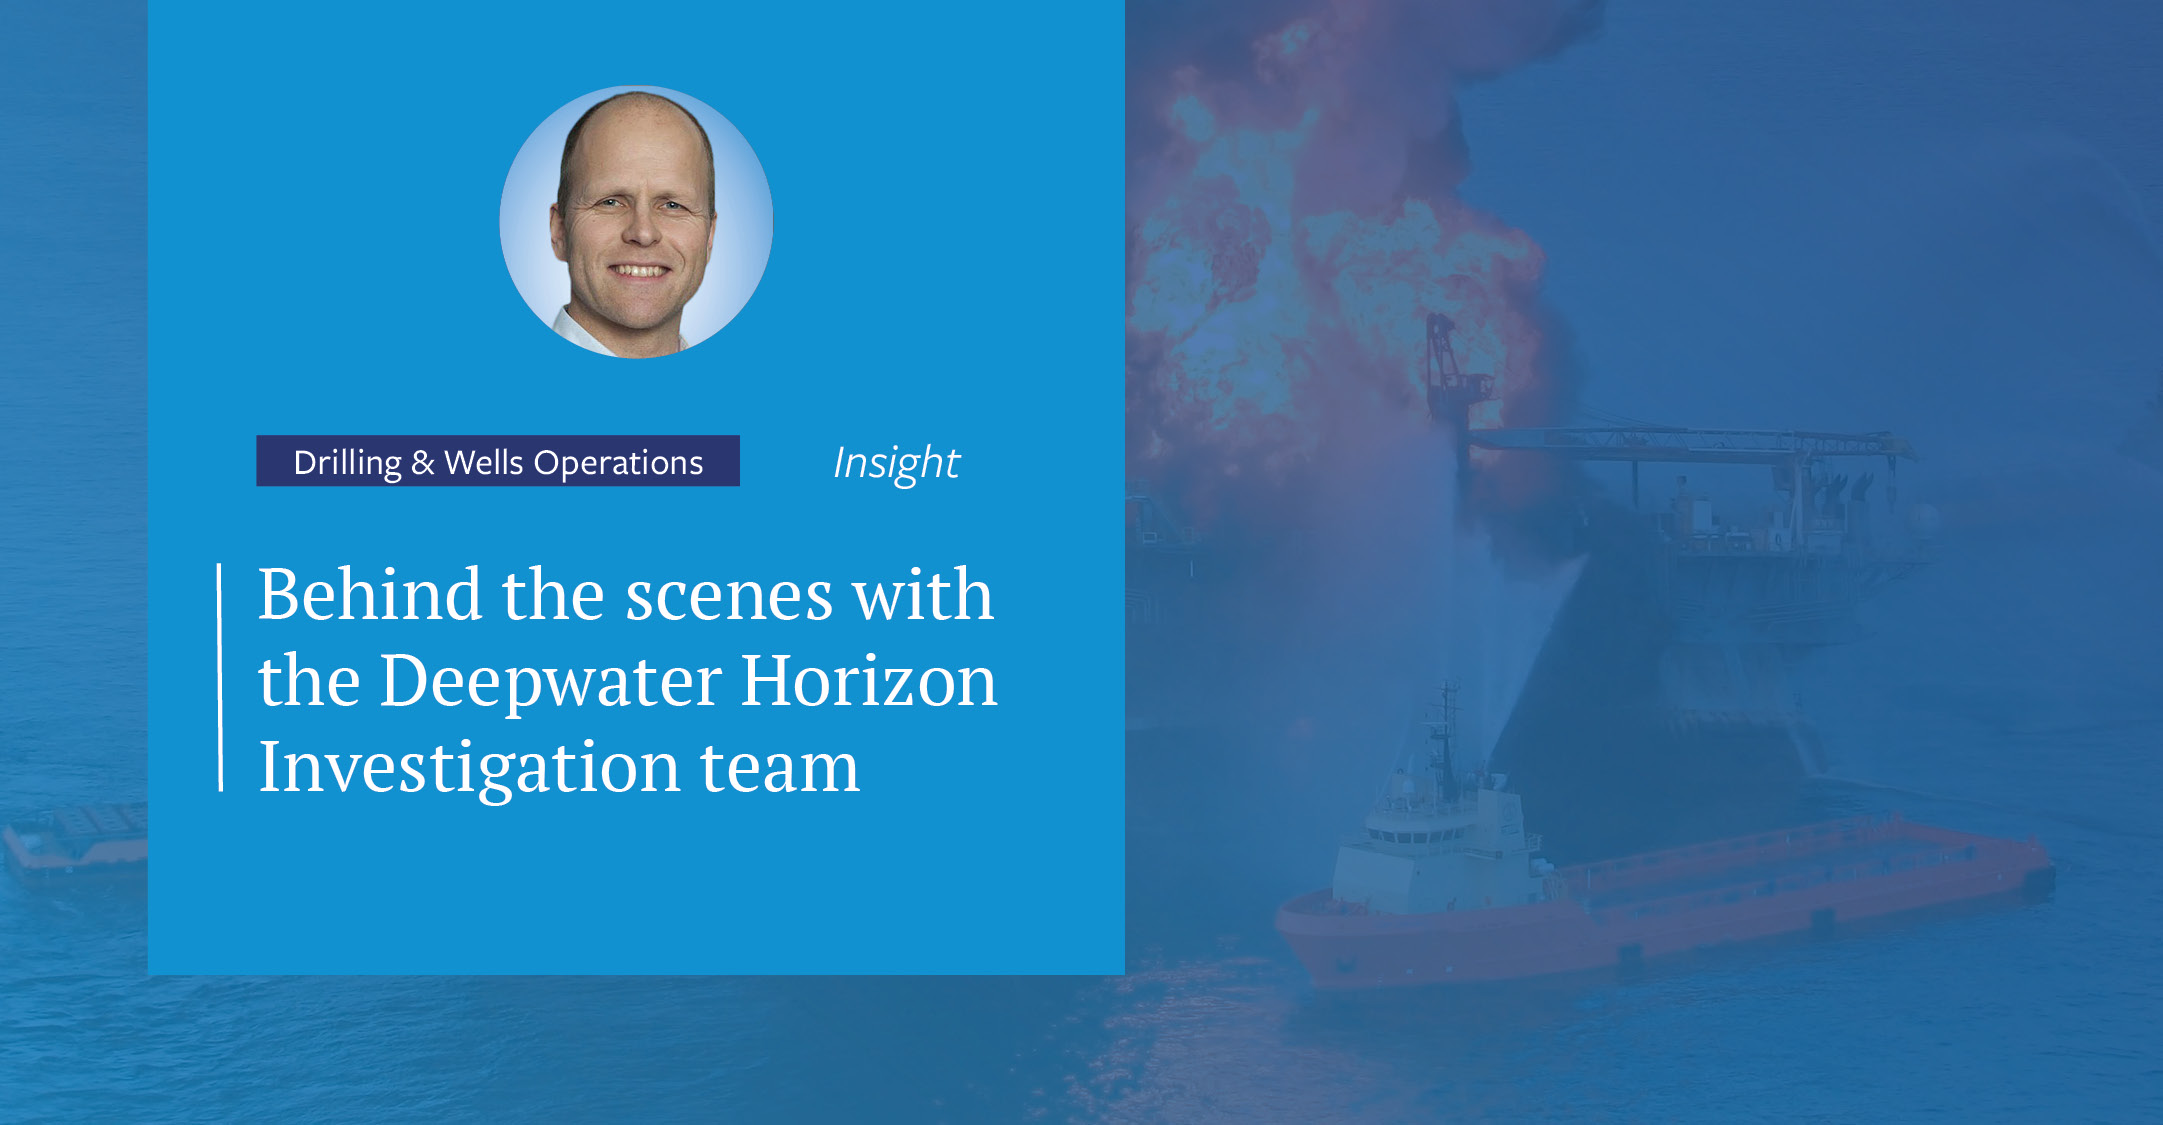 Behind the scenes with the Deepwater Horizon Investigation team